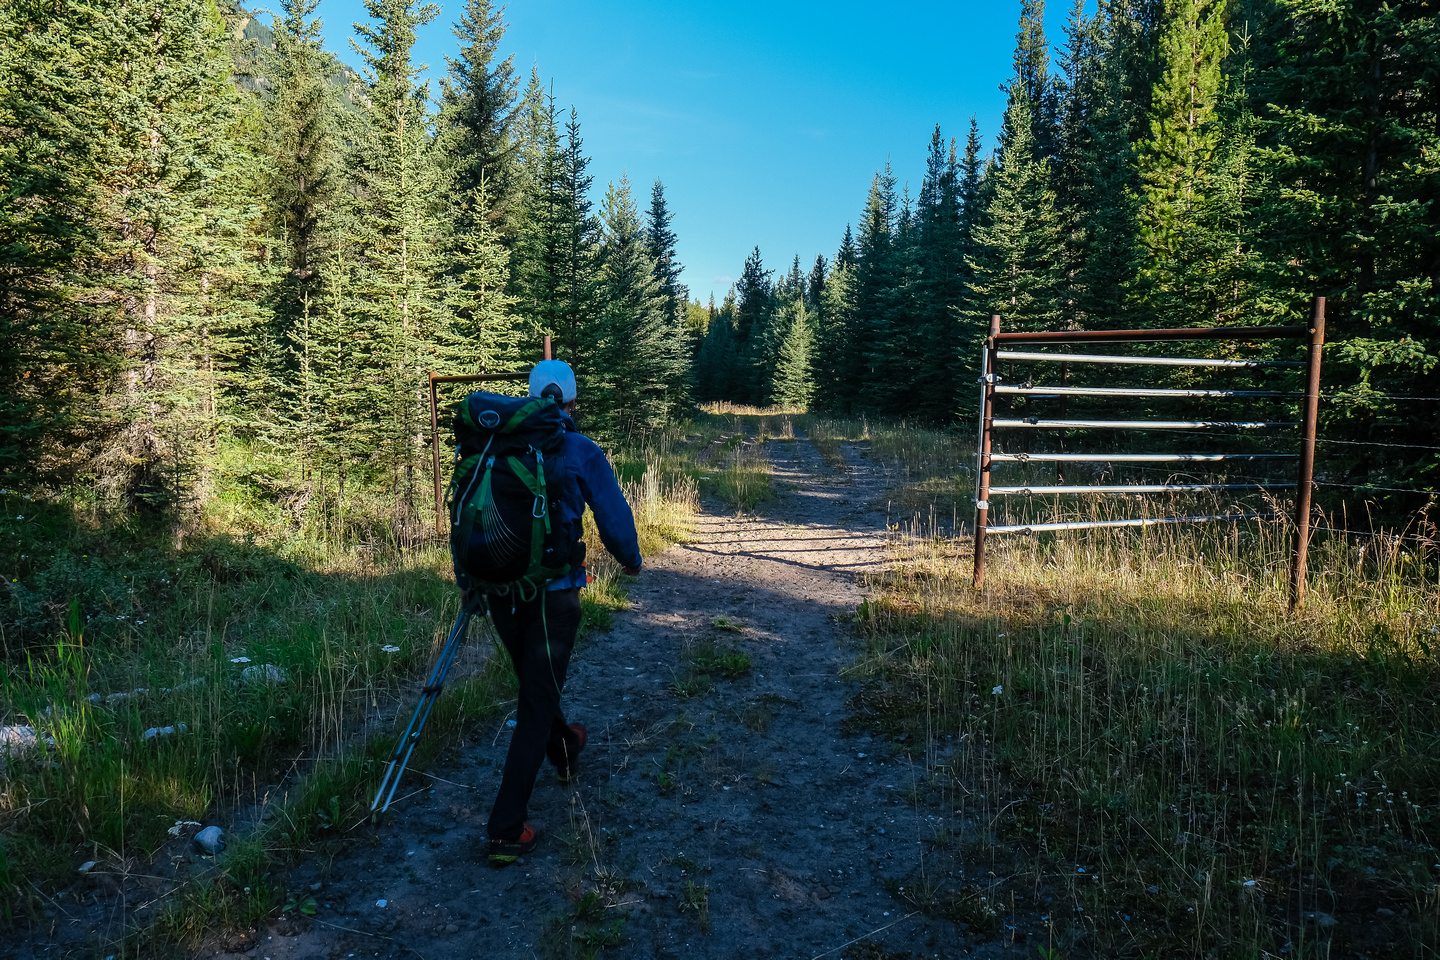 Starting our long hike up the Cascade Fire Road through the bison fence.